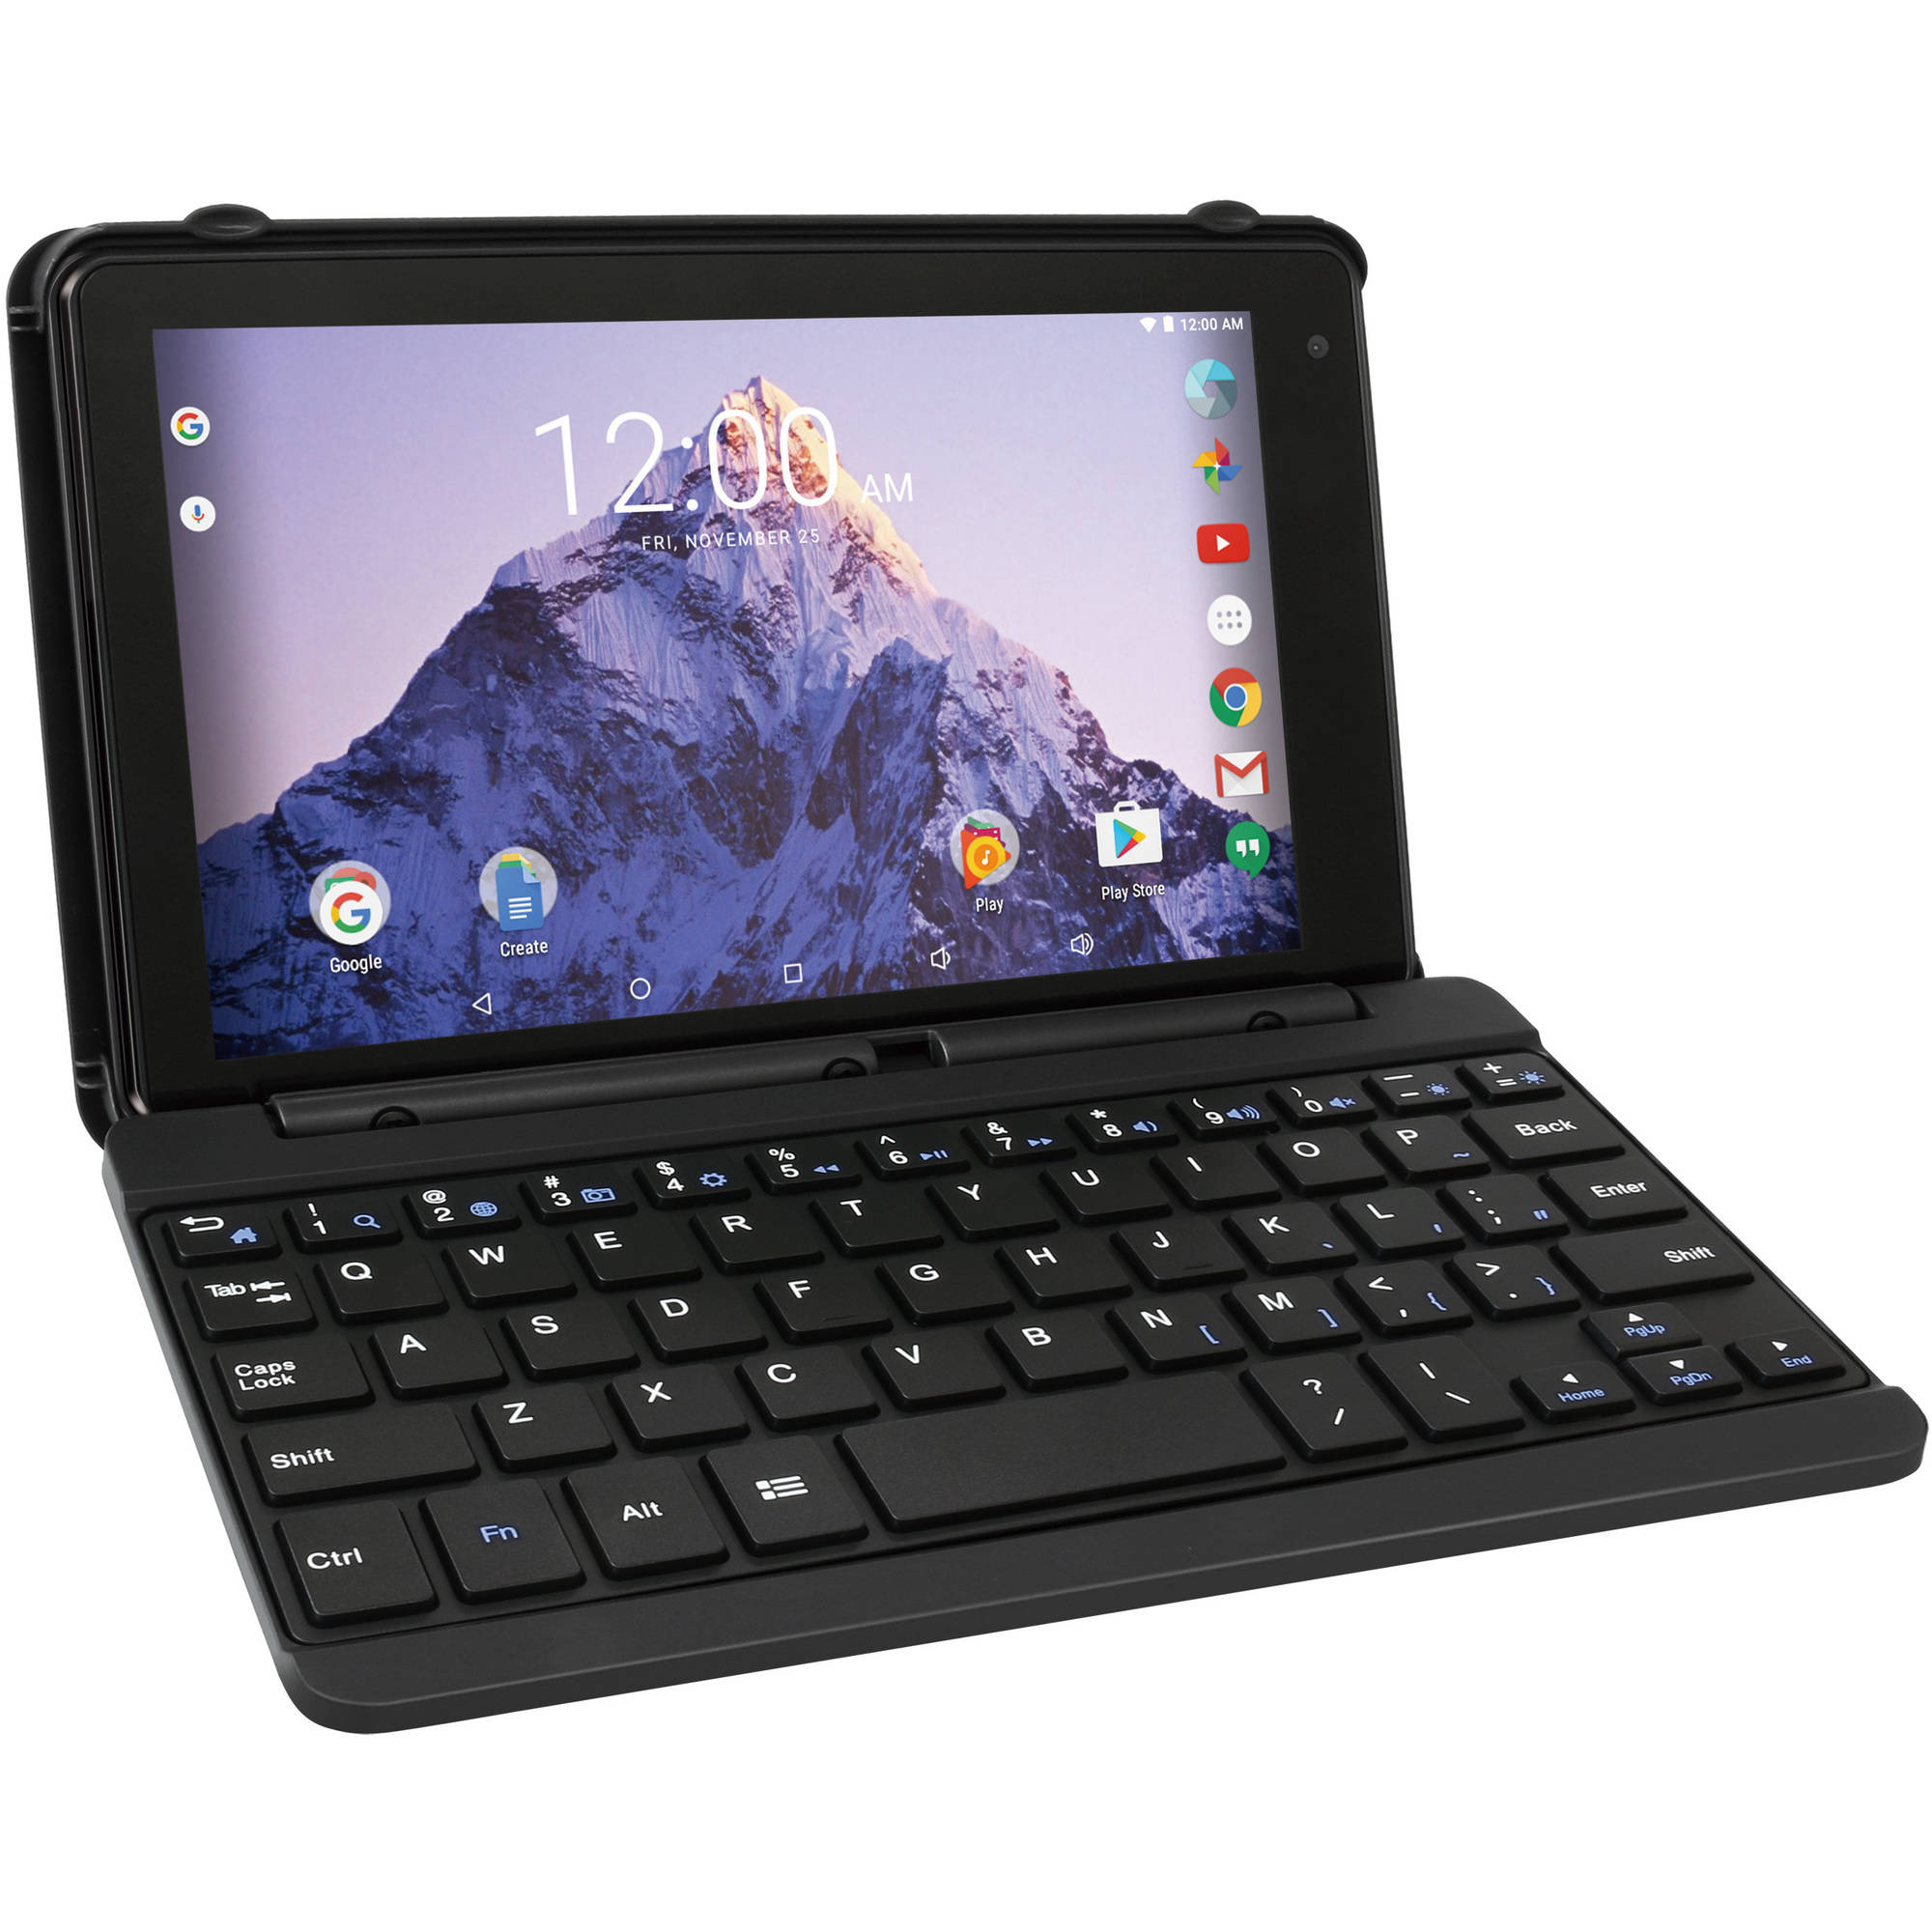 "RCA Voyager 7"" 16GB Tablet with Keyboard Case Android 6.0 (Marshmallow)"